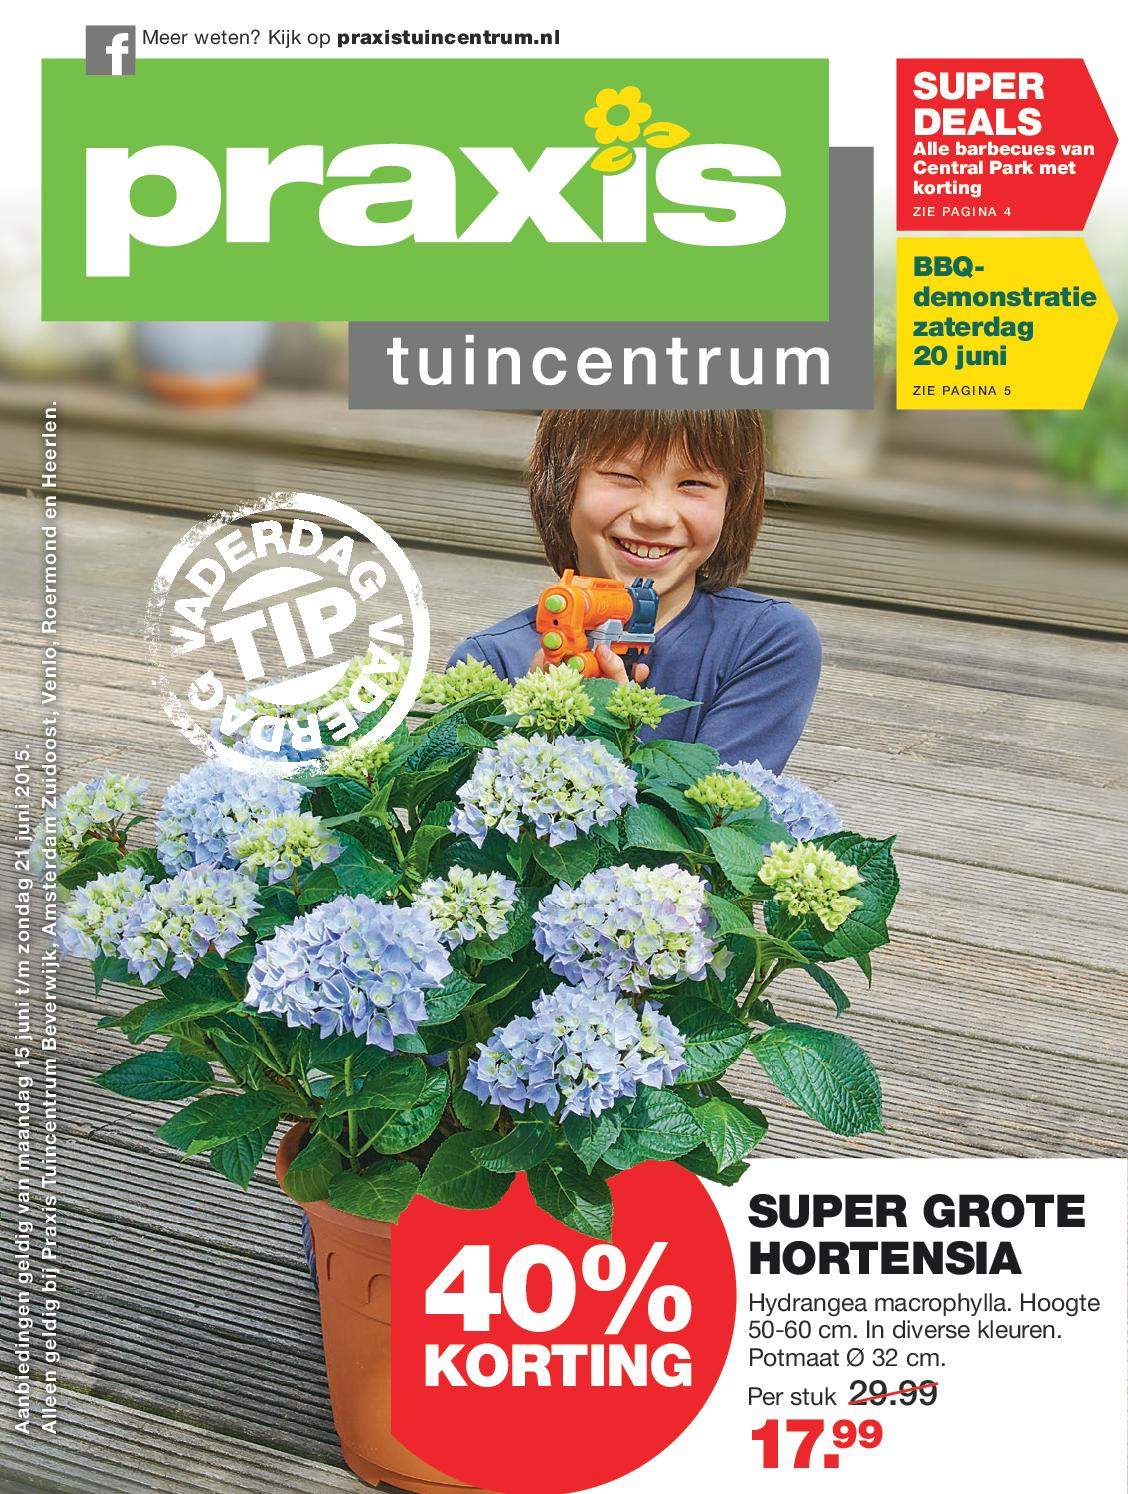 Hortensia Aanbieding Praxis Praxis Tuin Folder Week 25 2015 By Online Folders Issuu